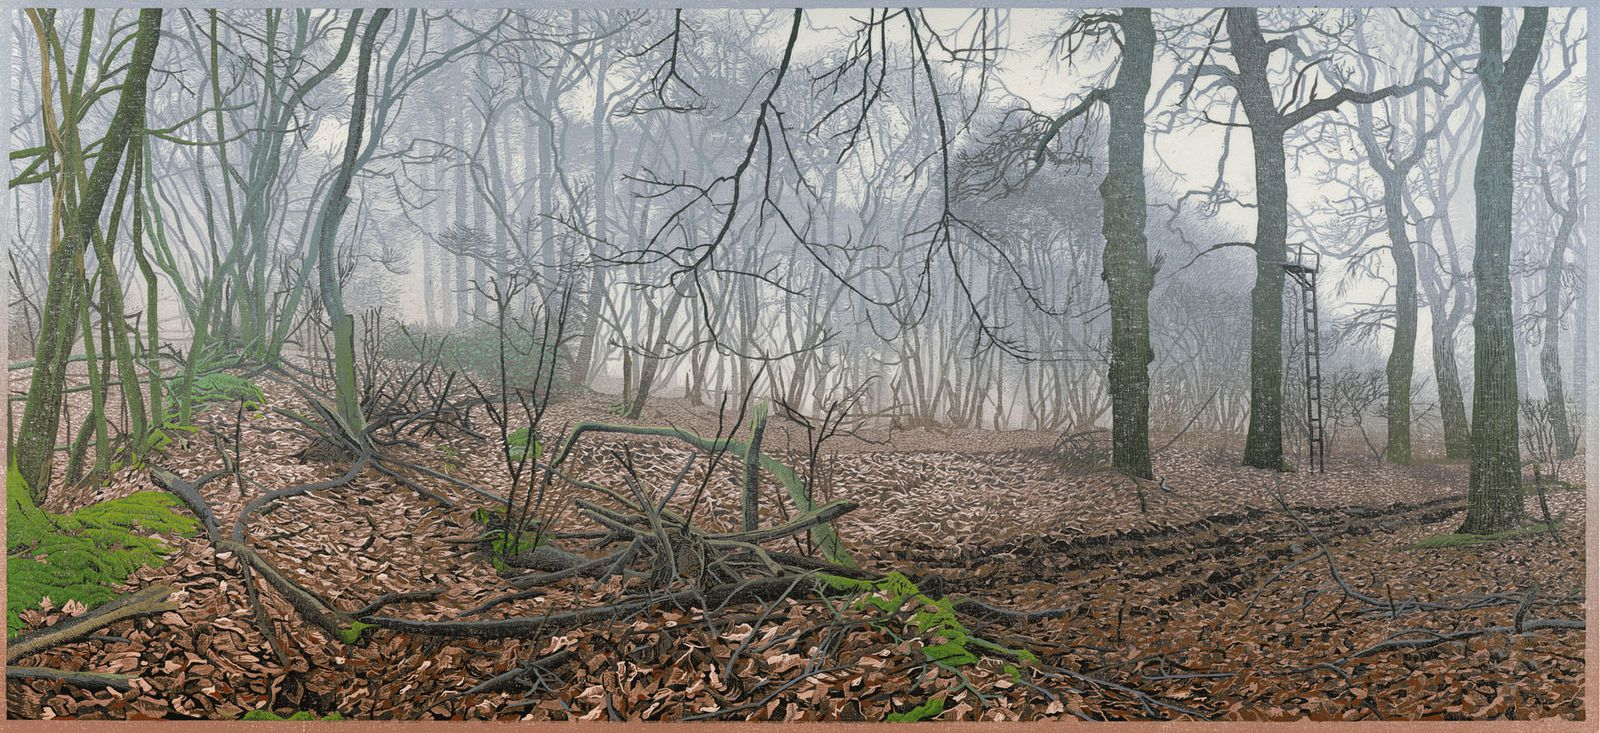 Siemen Dijkstra, 1999 – 2017 – De Bork, 2017. Gravure sur bois en couleurs. – 380 × 820 mm Collection de l'artiste © ADAGP, Paris 2019 / photo : Bert de Vries, Beeldwerk